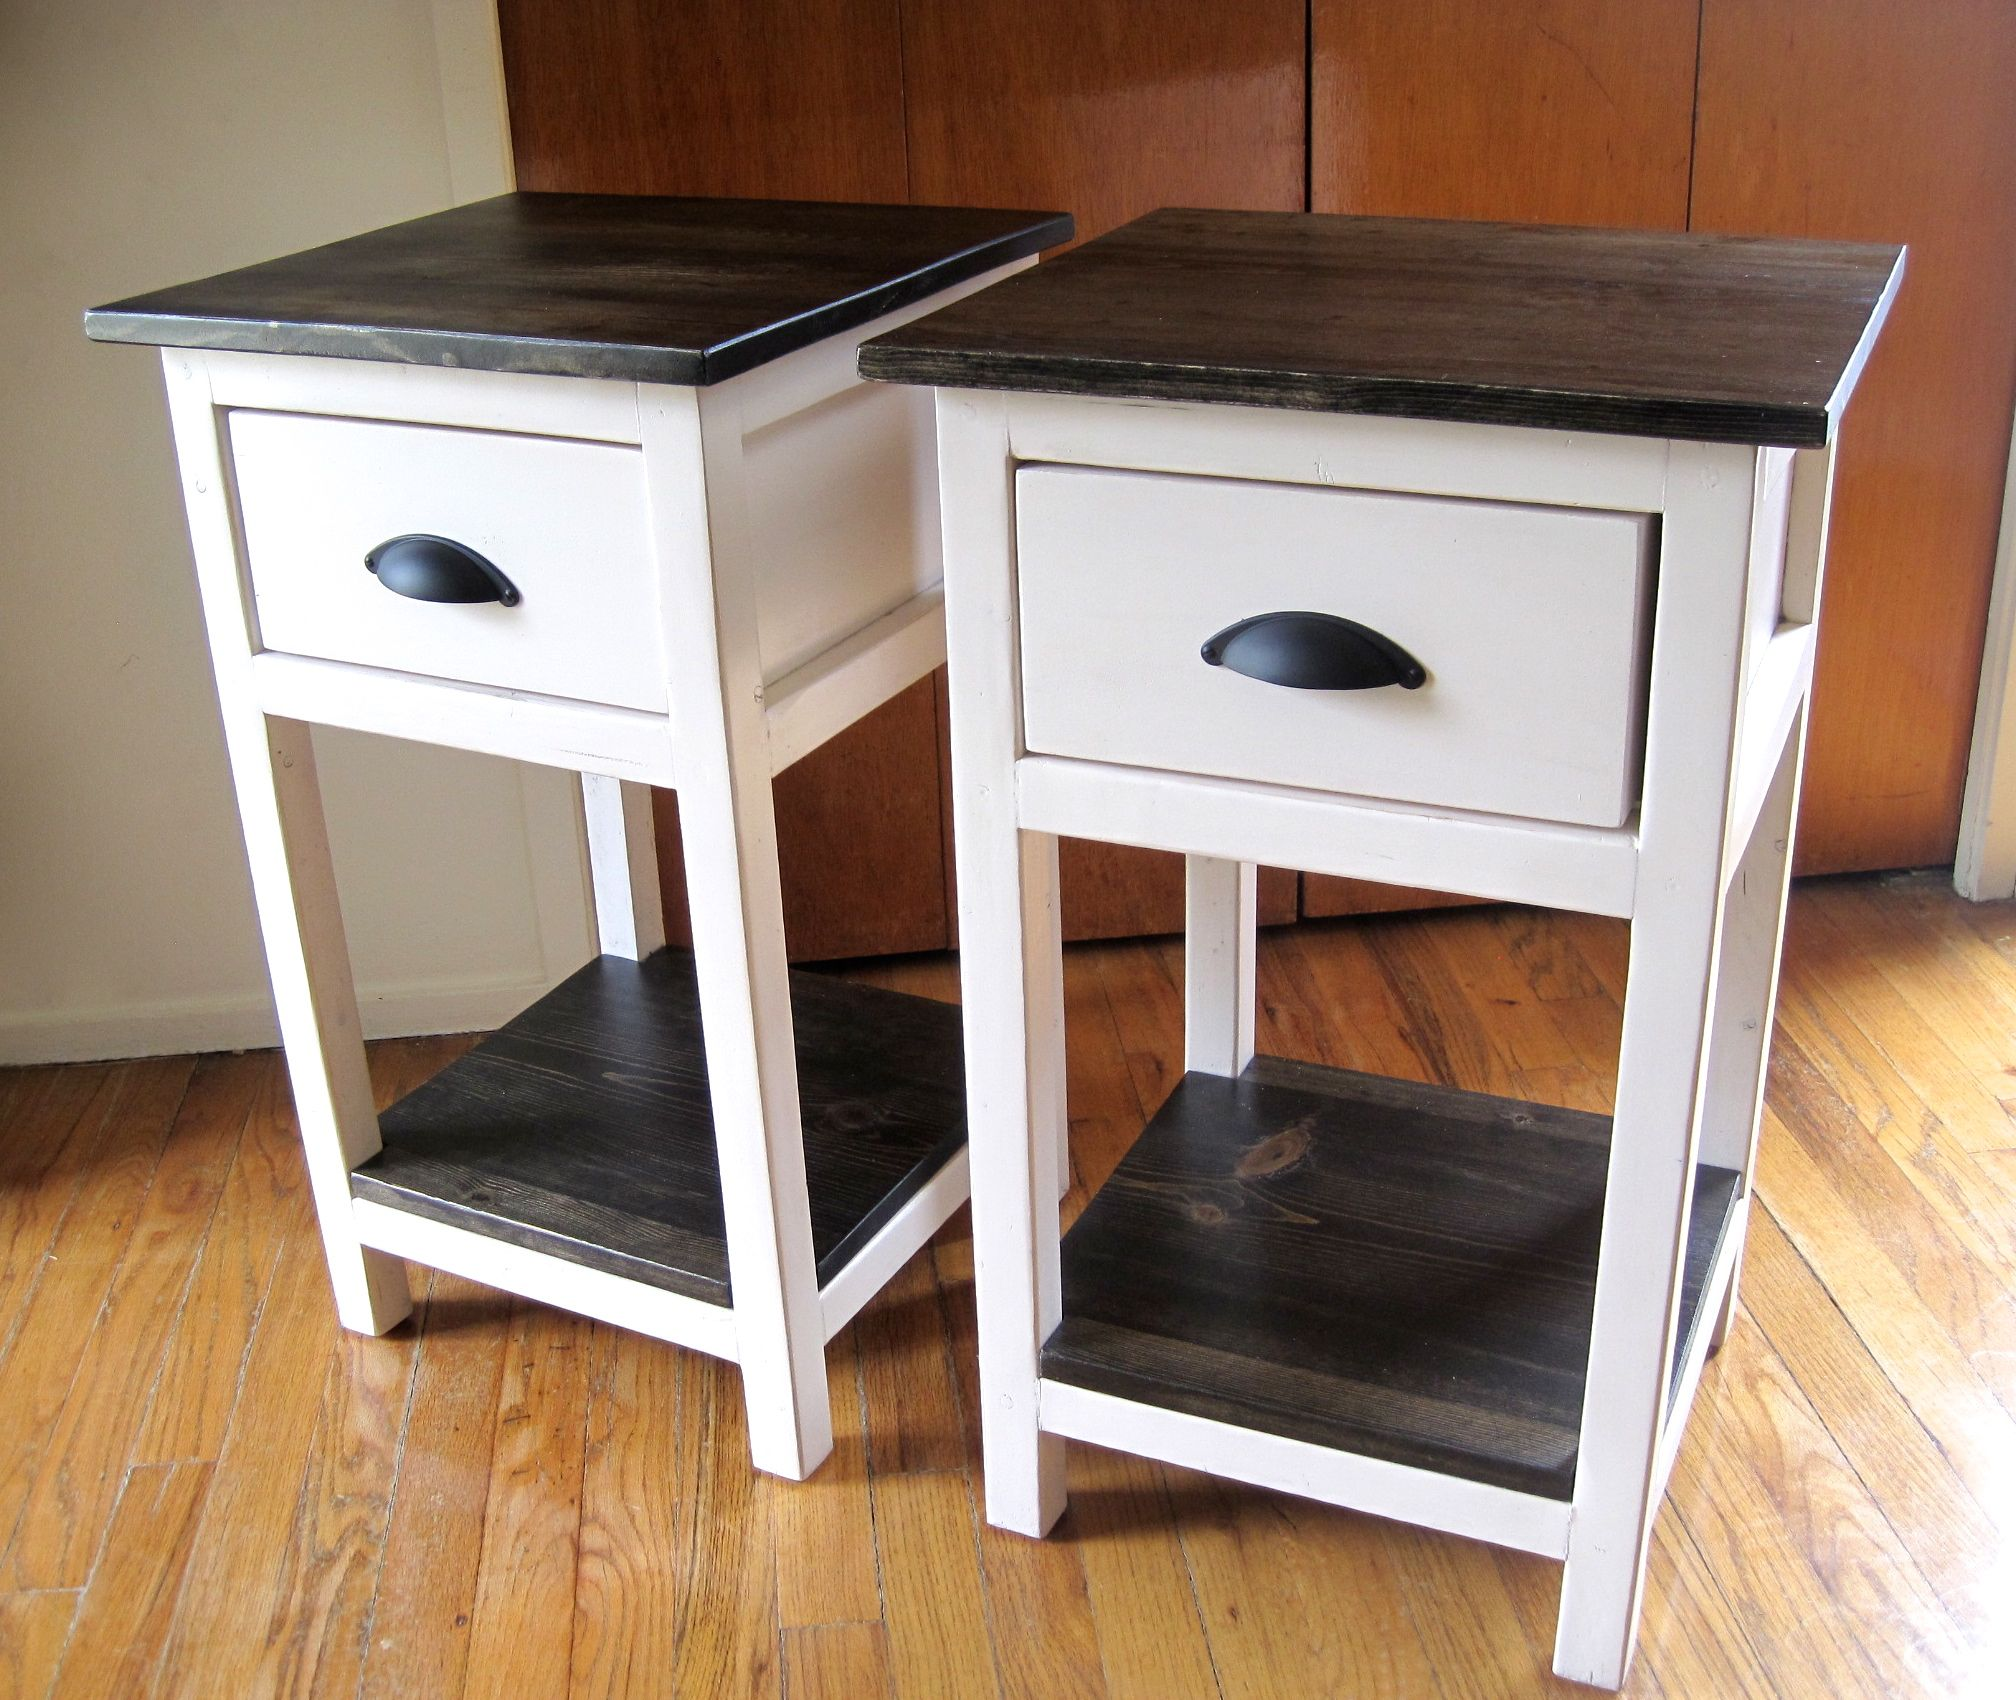 Ana white build a mini farmhouse bedside table plans for Free nightstand woodworking plans